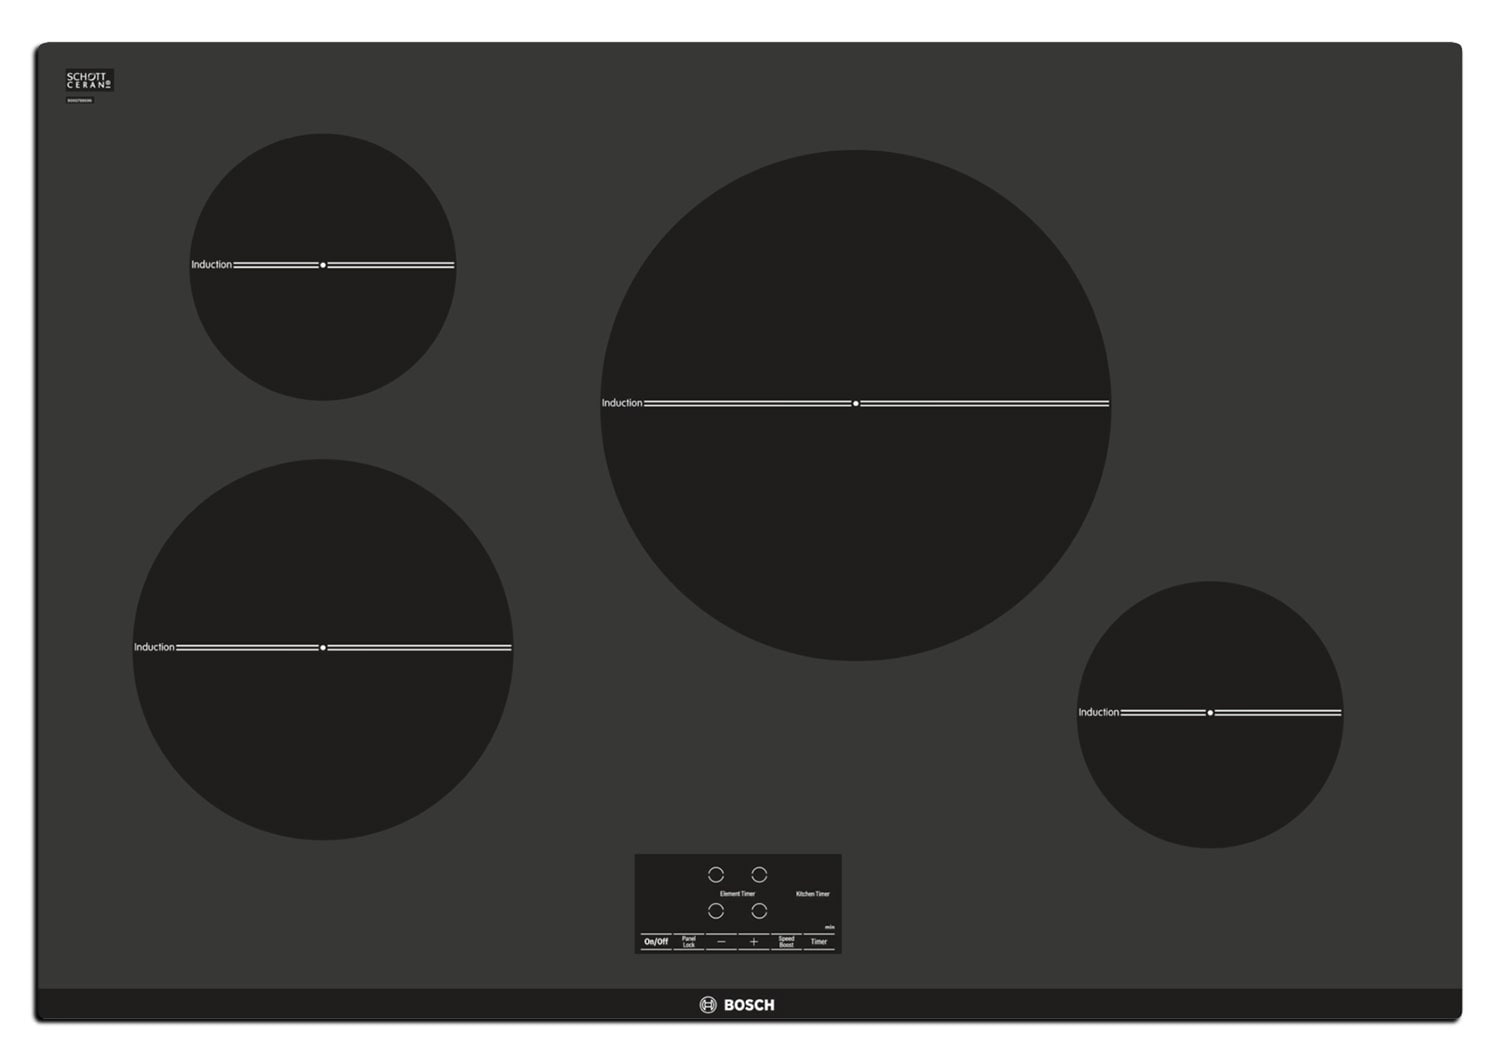 Cooking Products - Bosch Black Electric Induction Cooktop - NIT5066UC